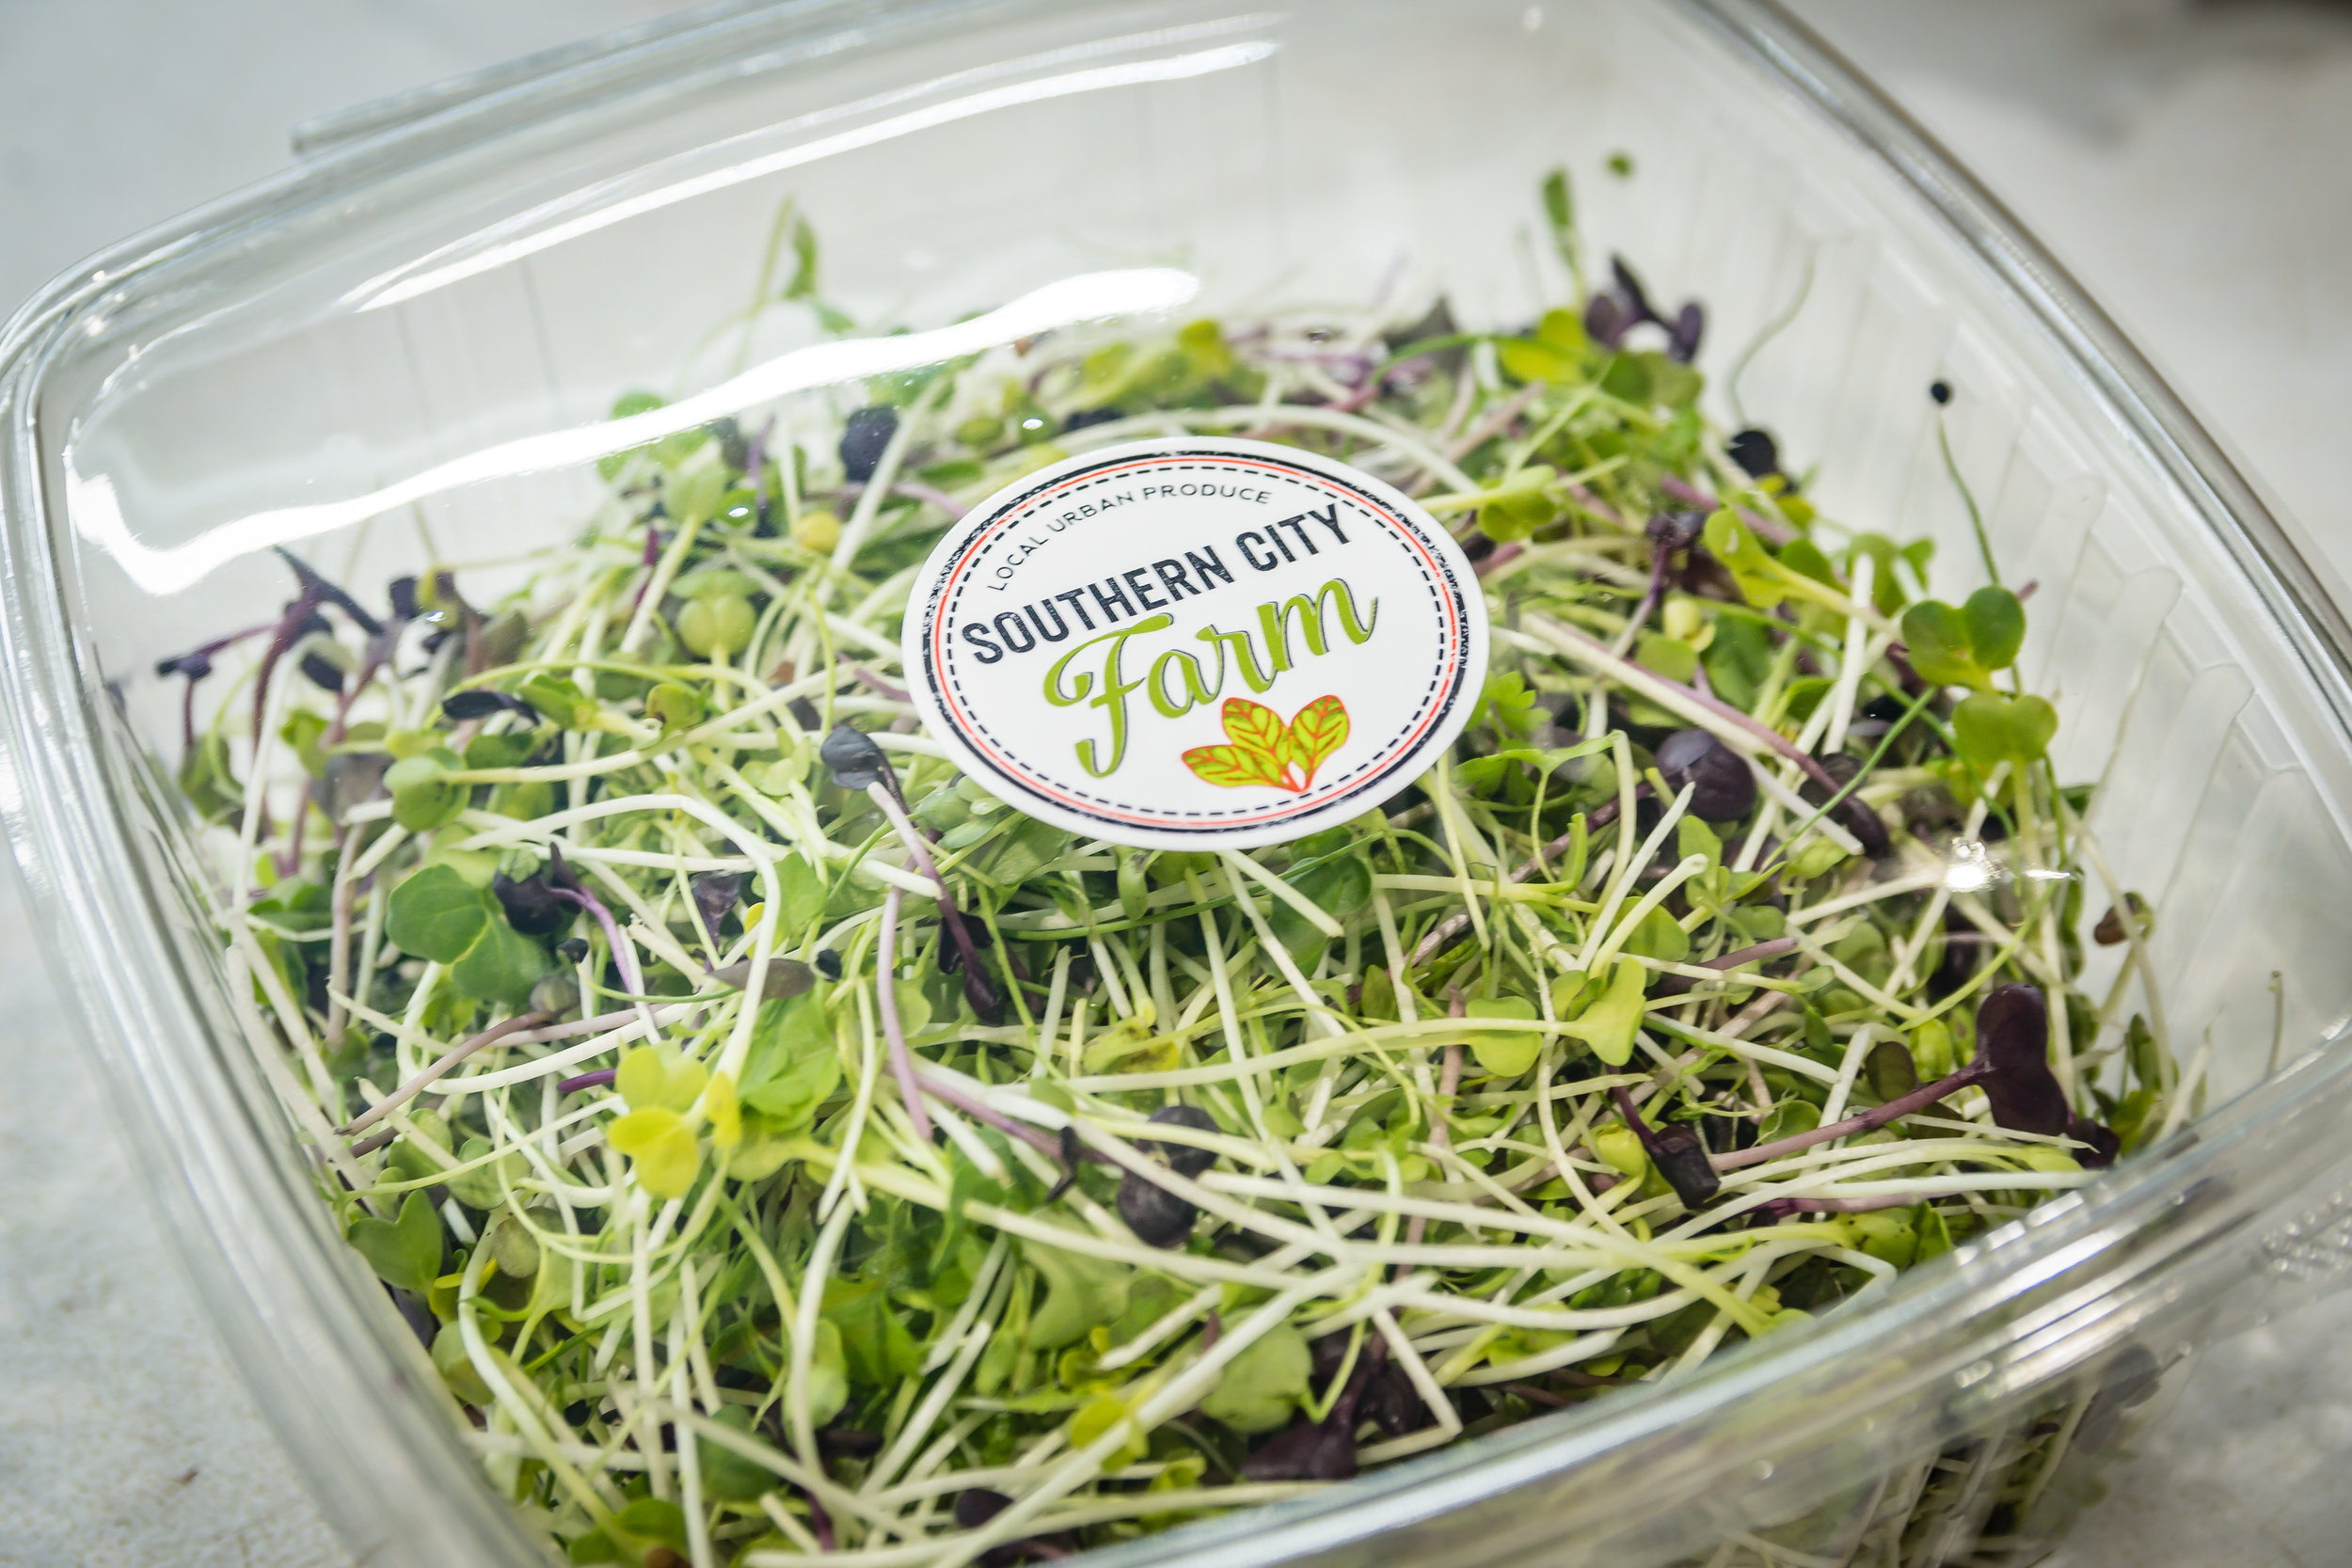 Southern City Farm Sprouts